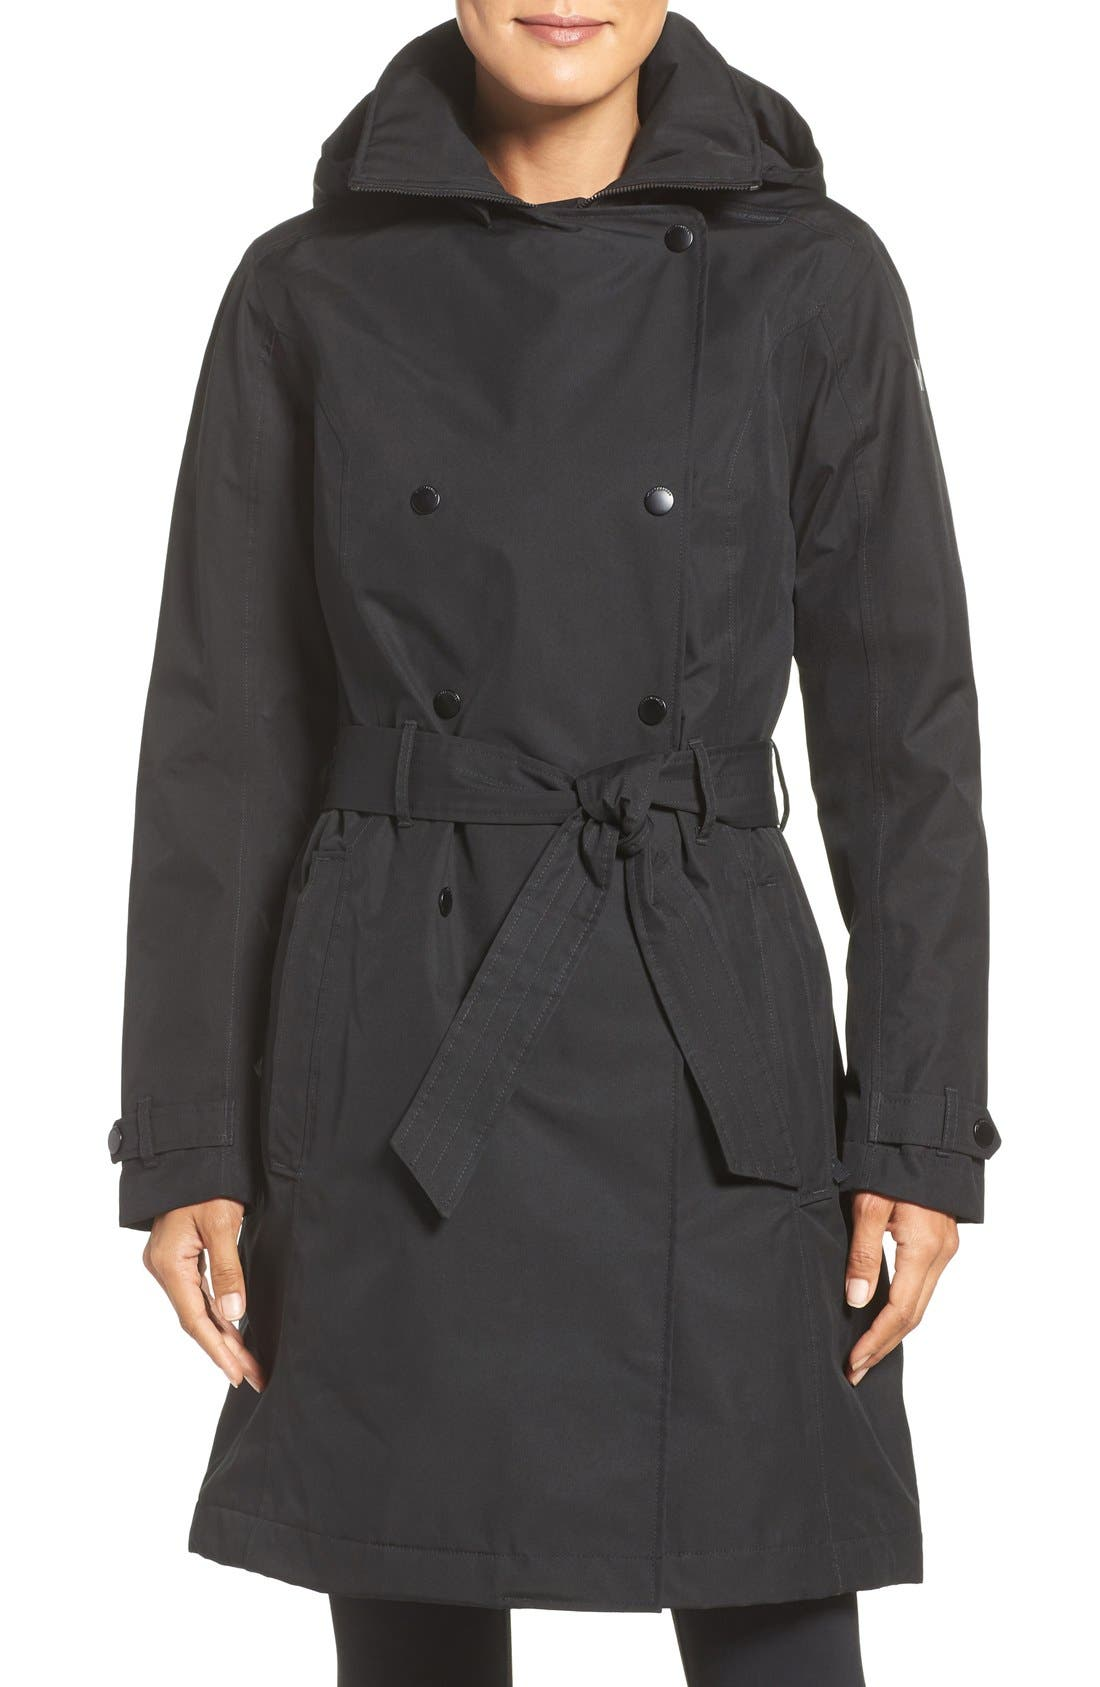 Main Image - Helly Hansen 'Welsey' Insulated Waterproof Trench Coat